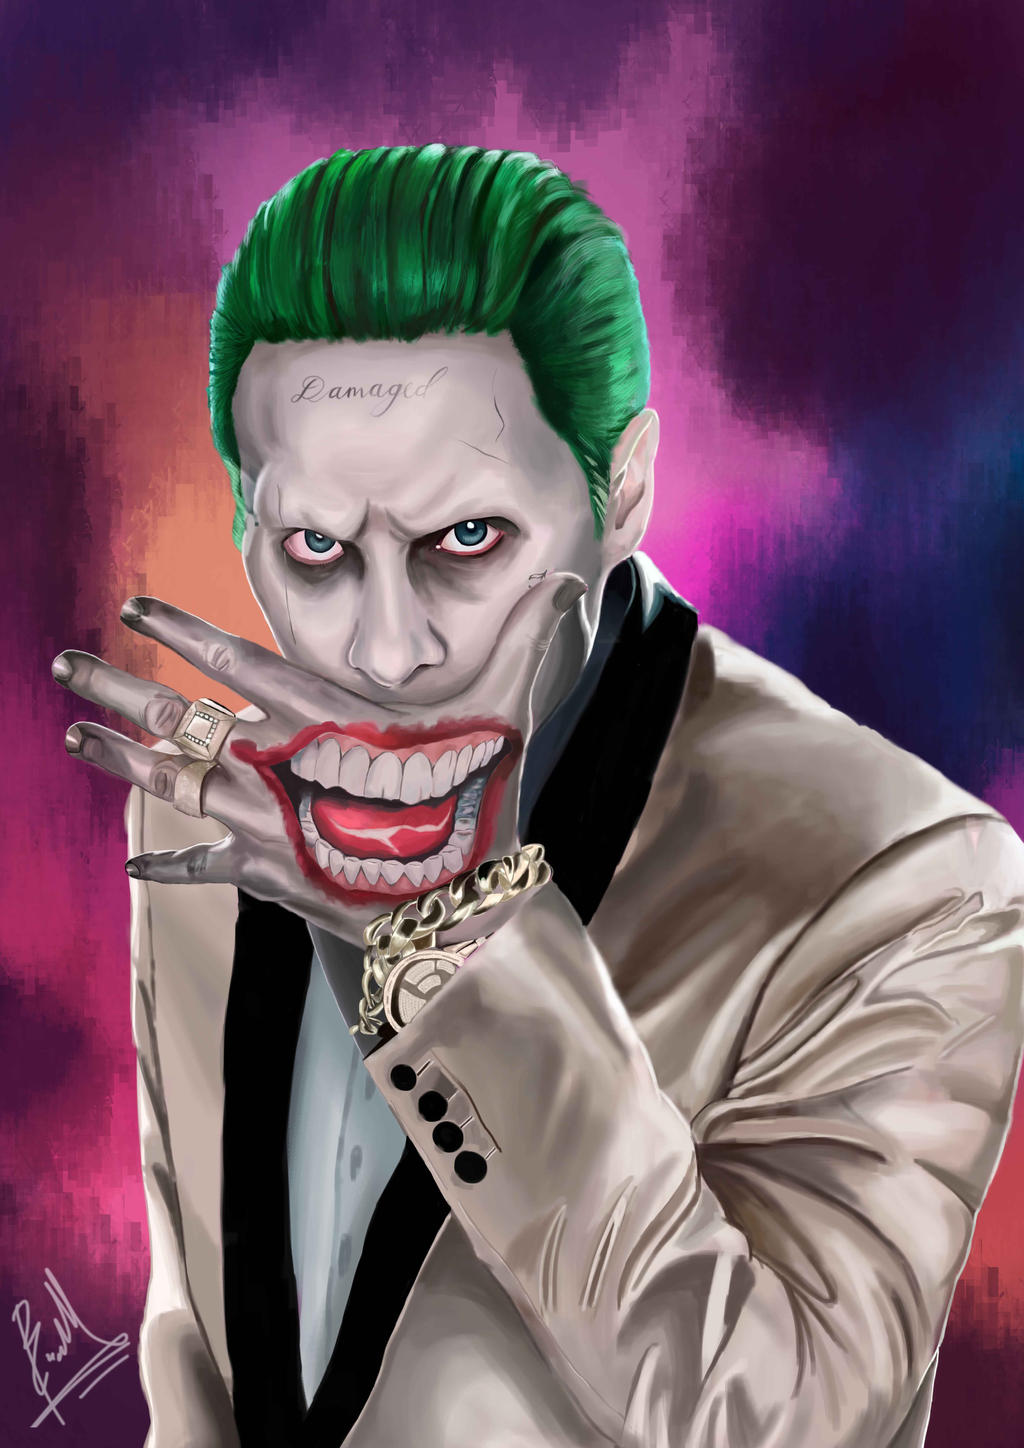 The joker jared leto digital painting by brianmarianto for Joker immagini hd